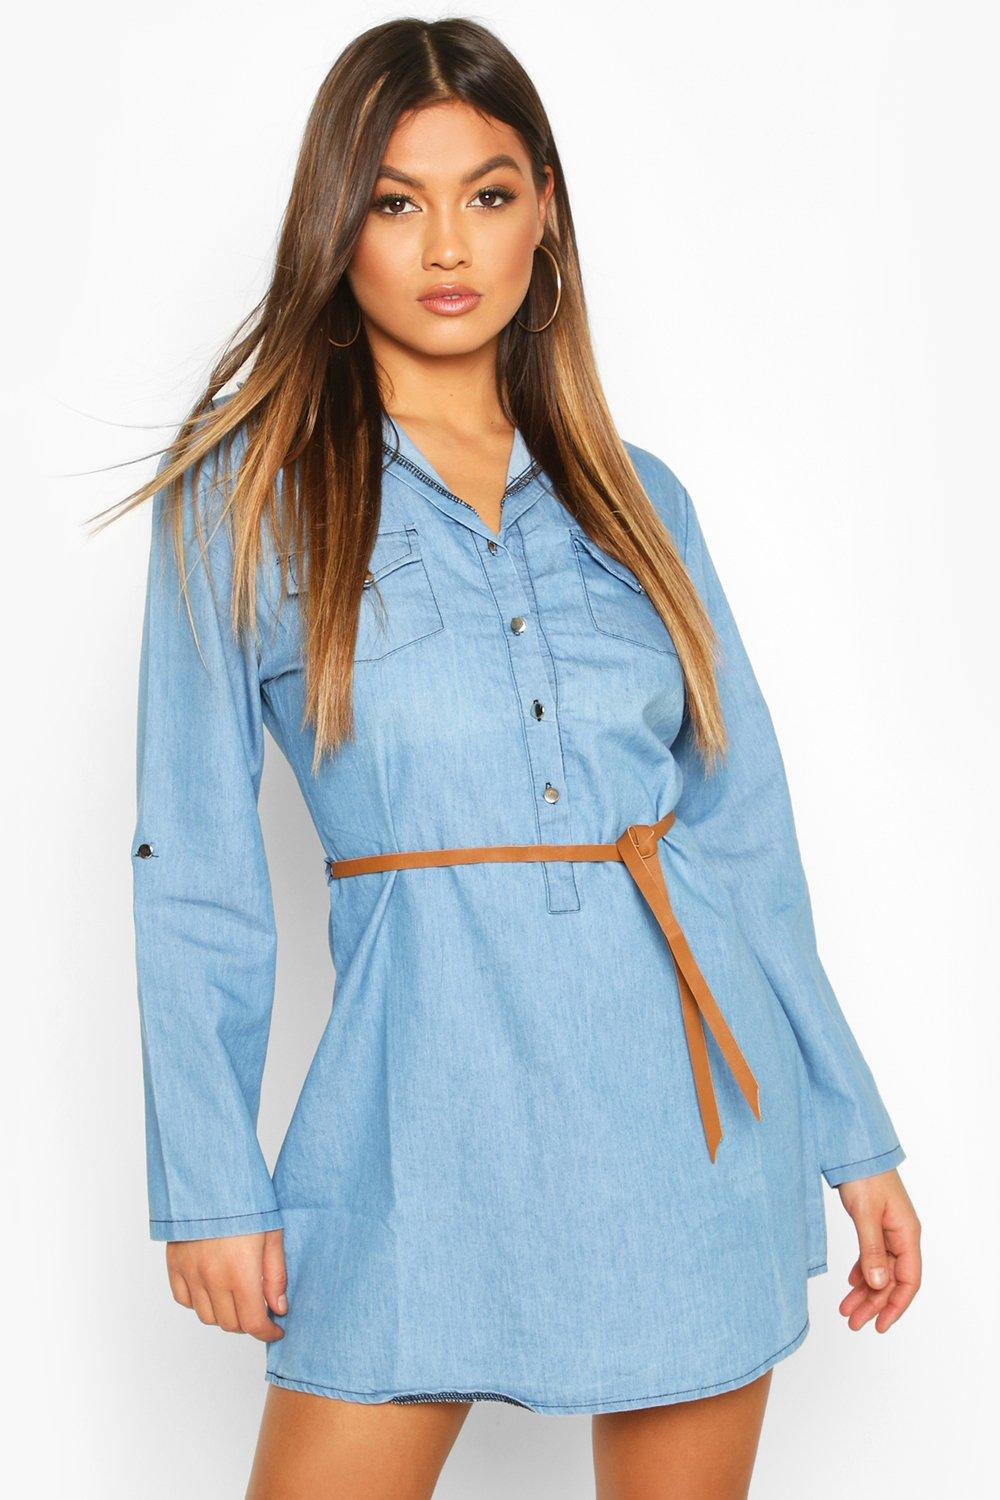 Boohoo womens ellie denim belted button front shirt dress for Blue denim shirt for womens